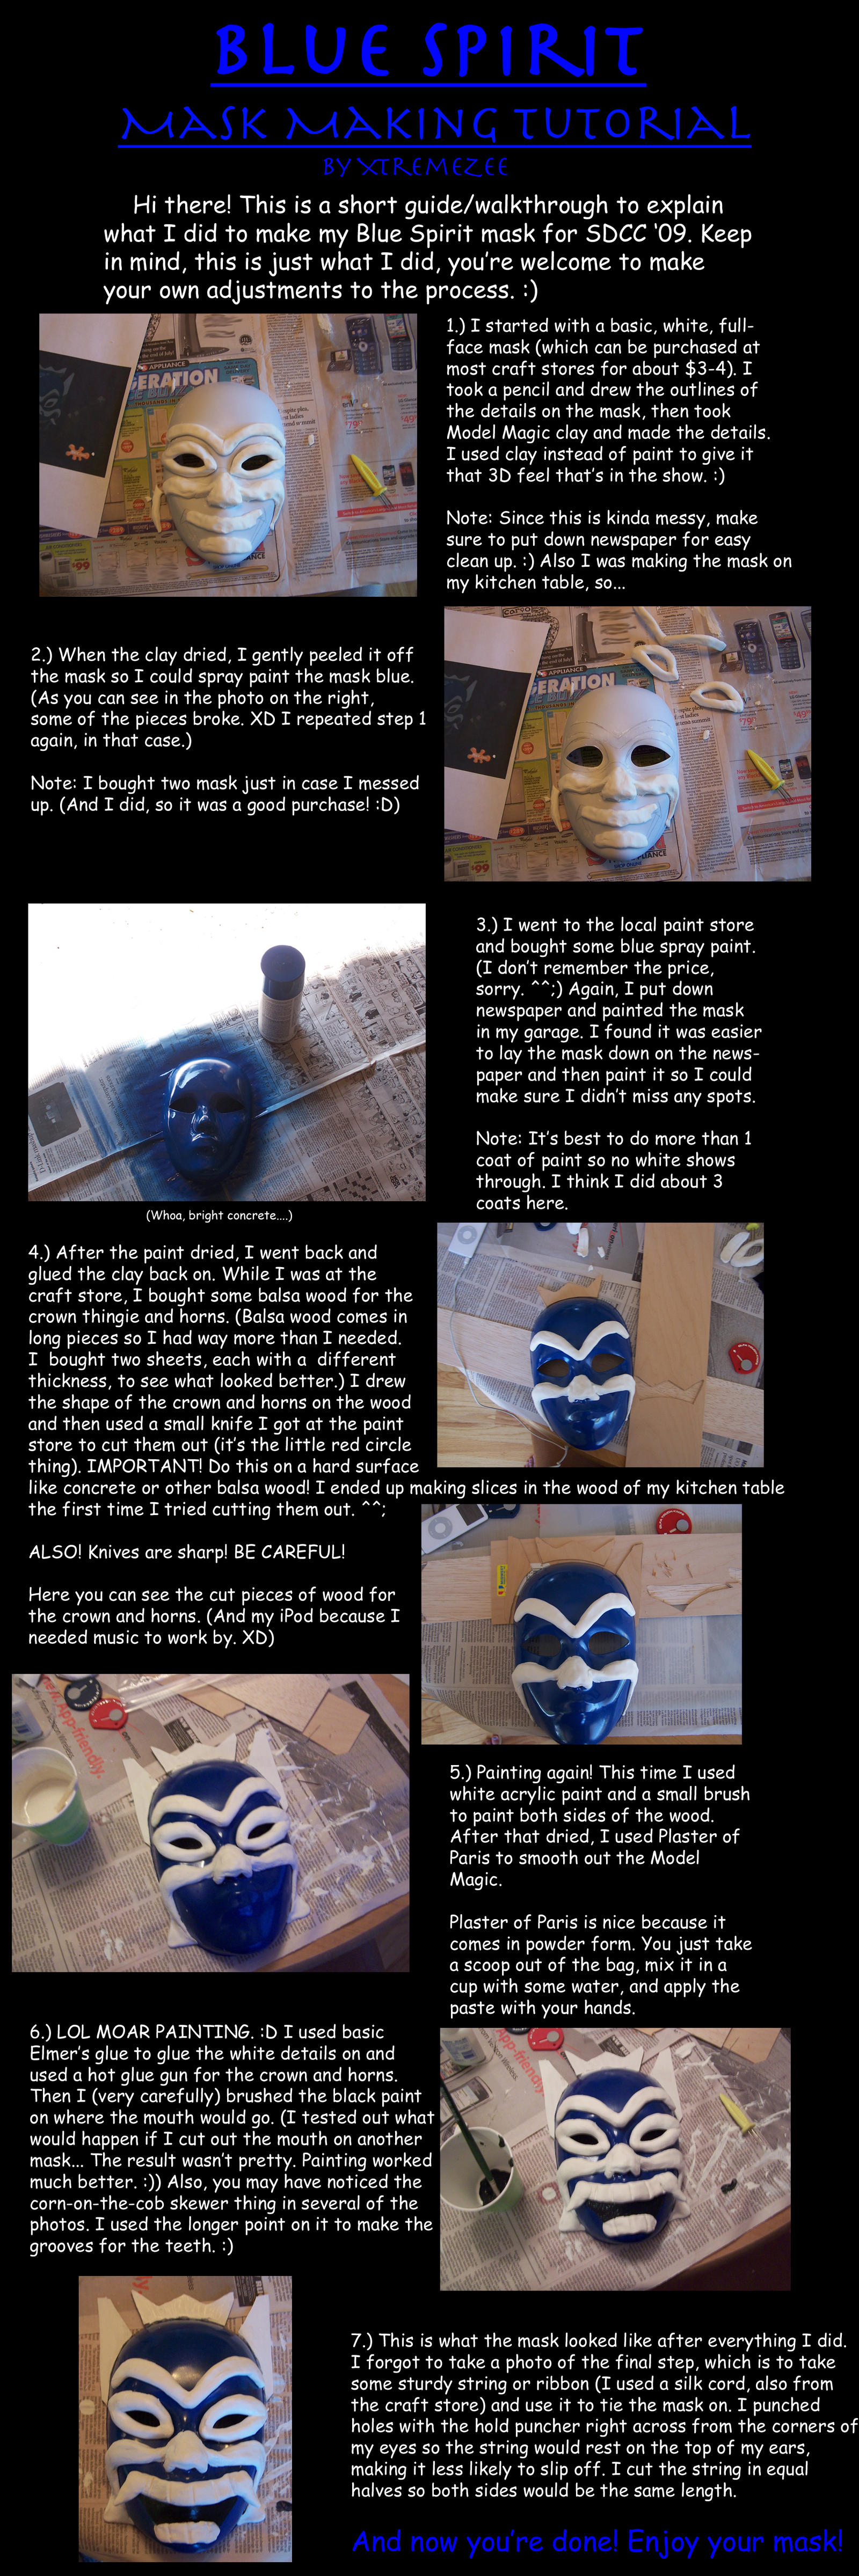 Blue Spirit Mask Tutorial by XtremeZee